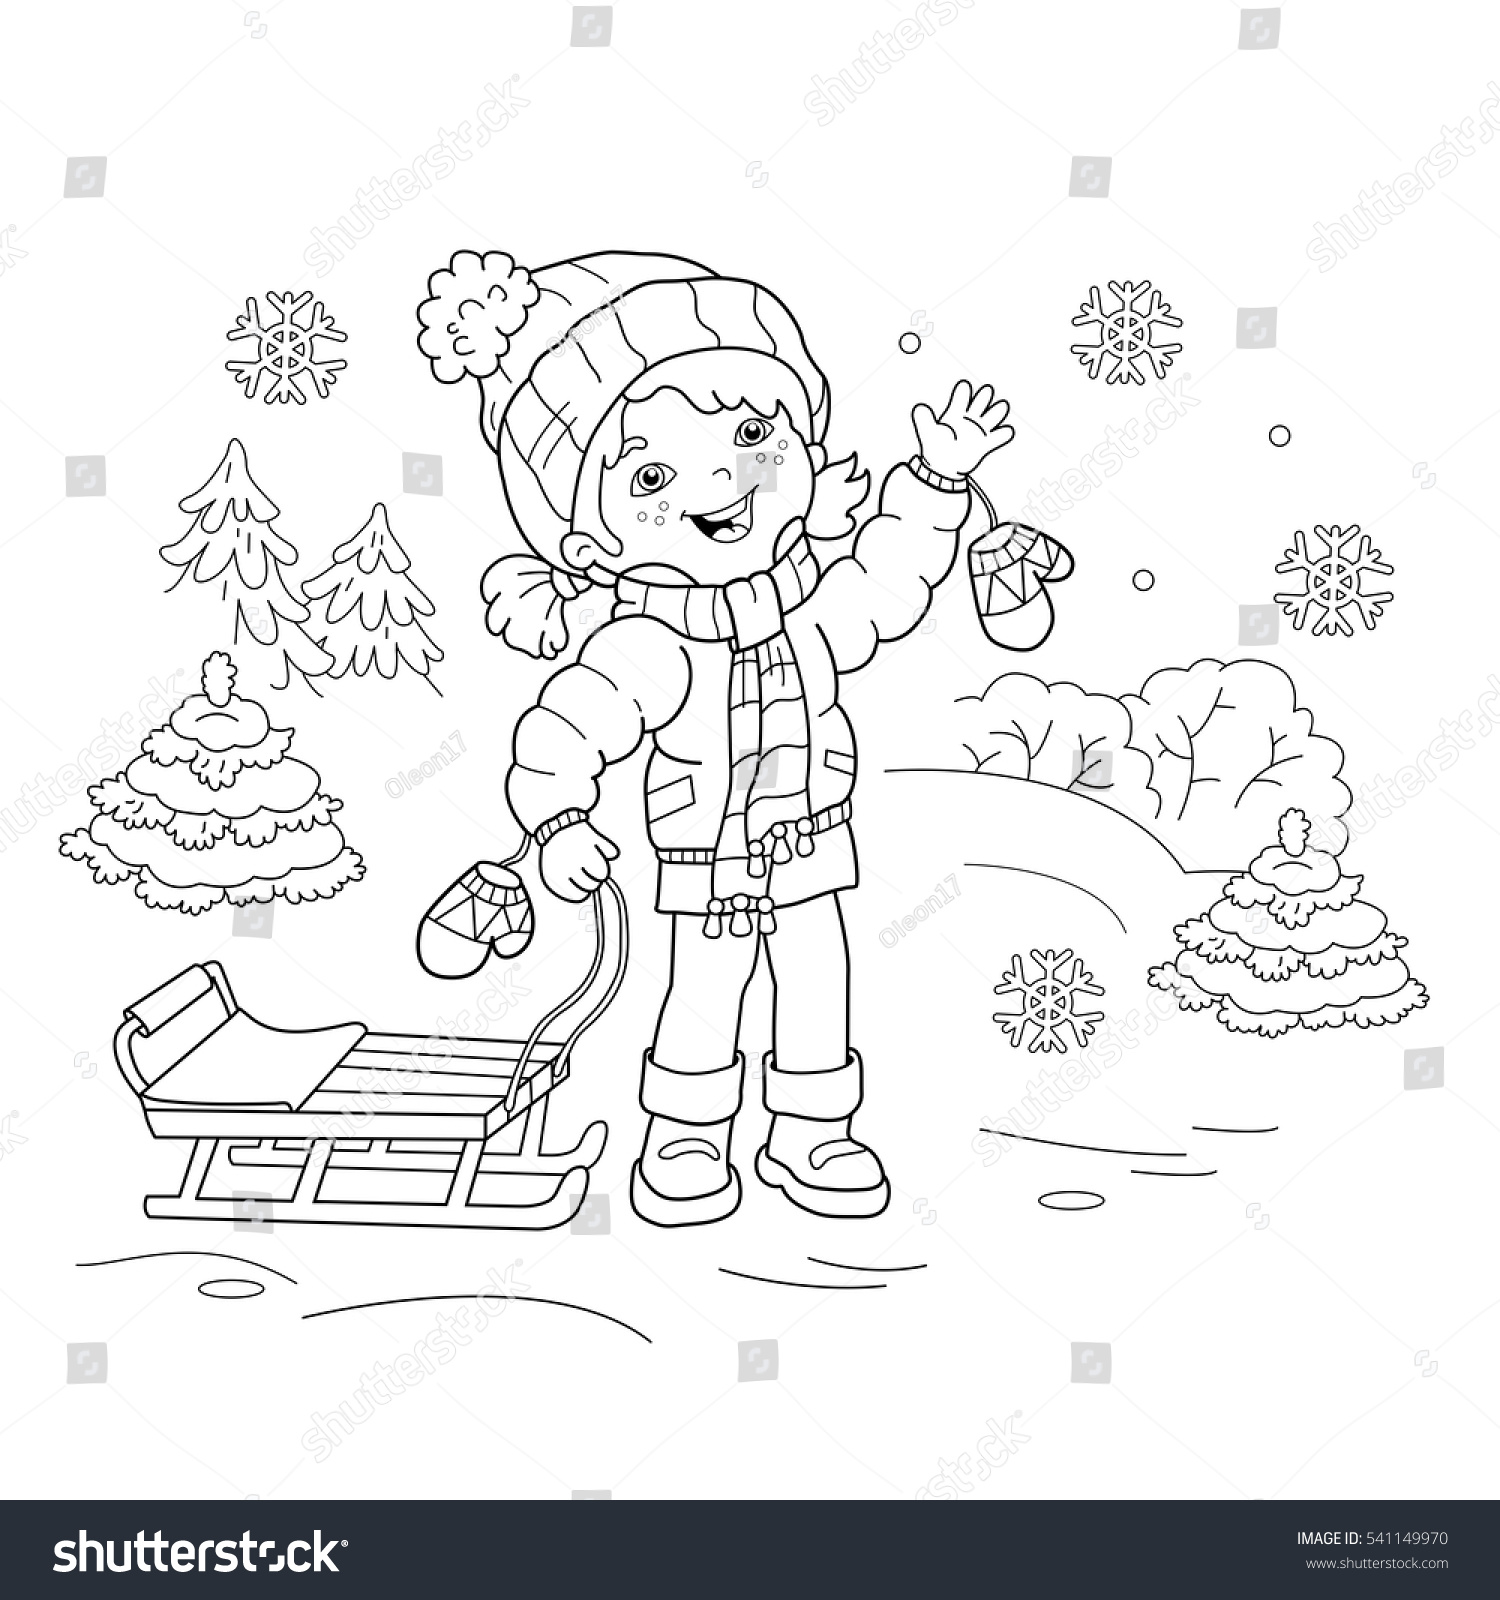 coloring page outline cartoon sled stock vector 541149970